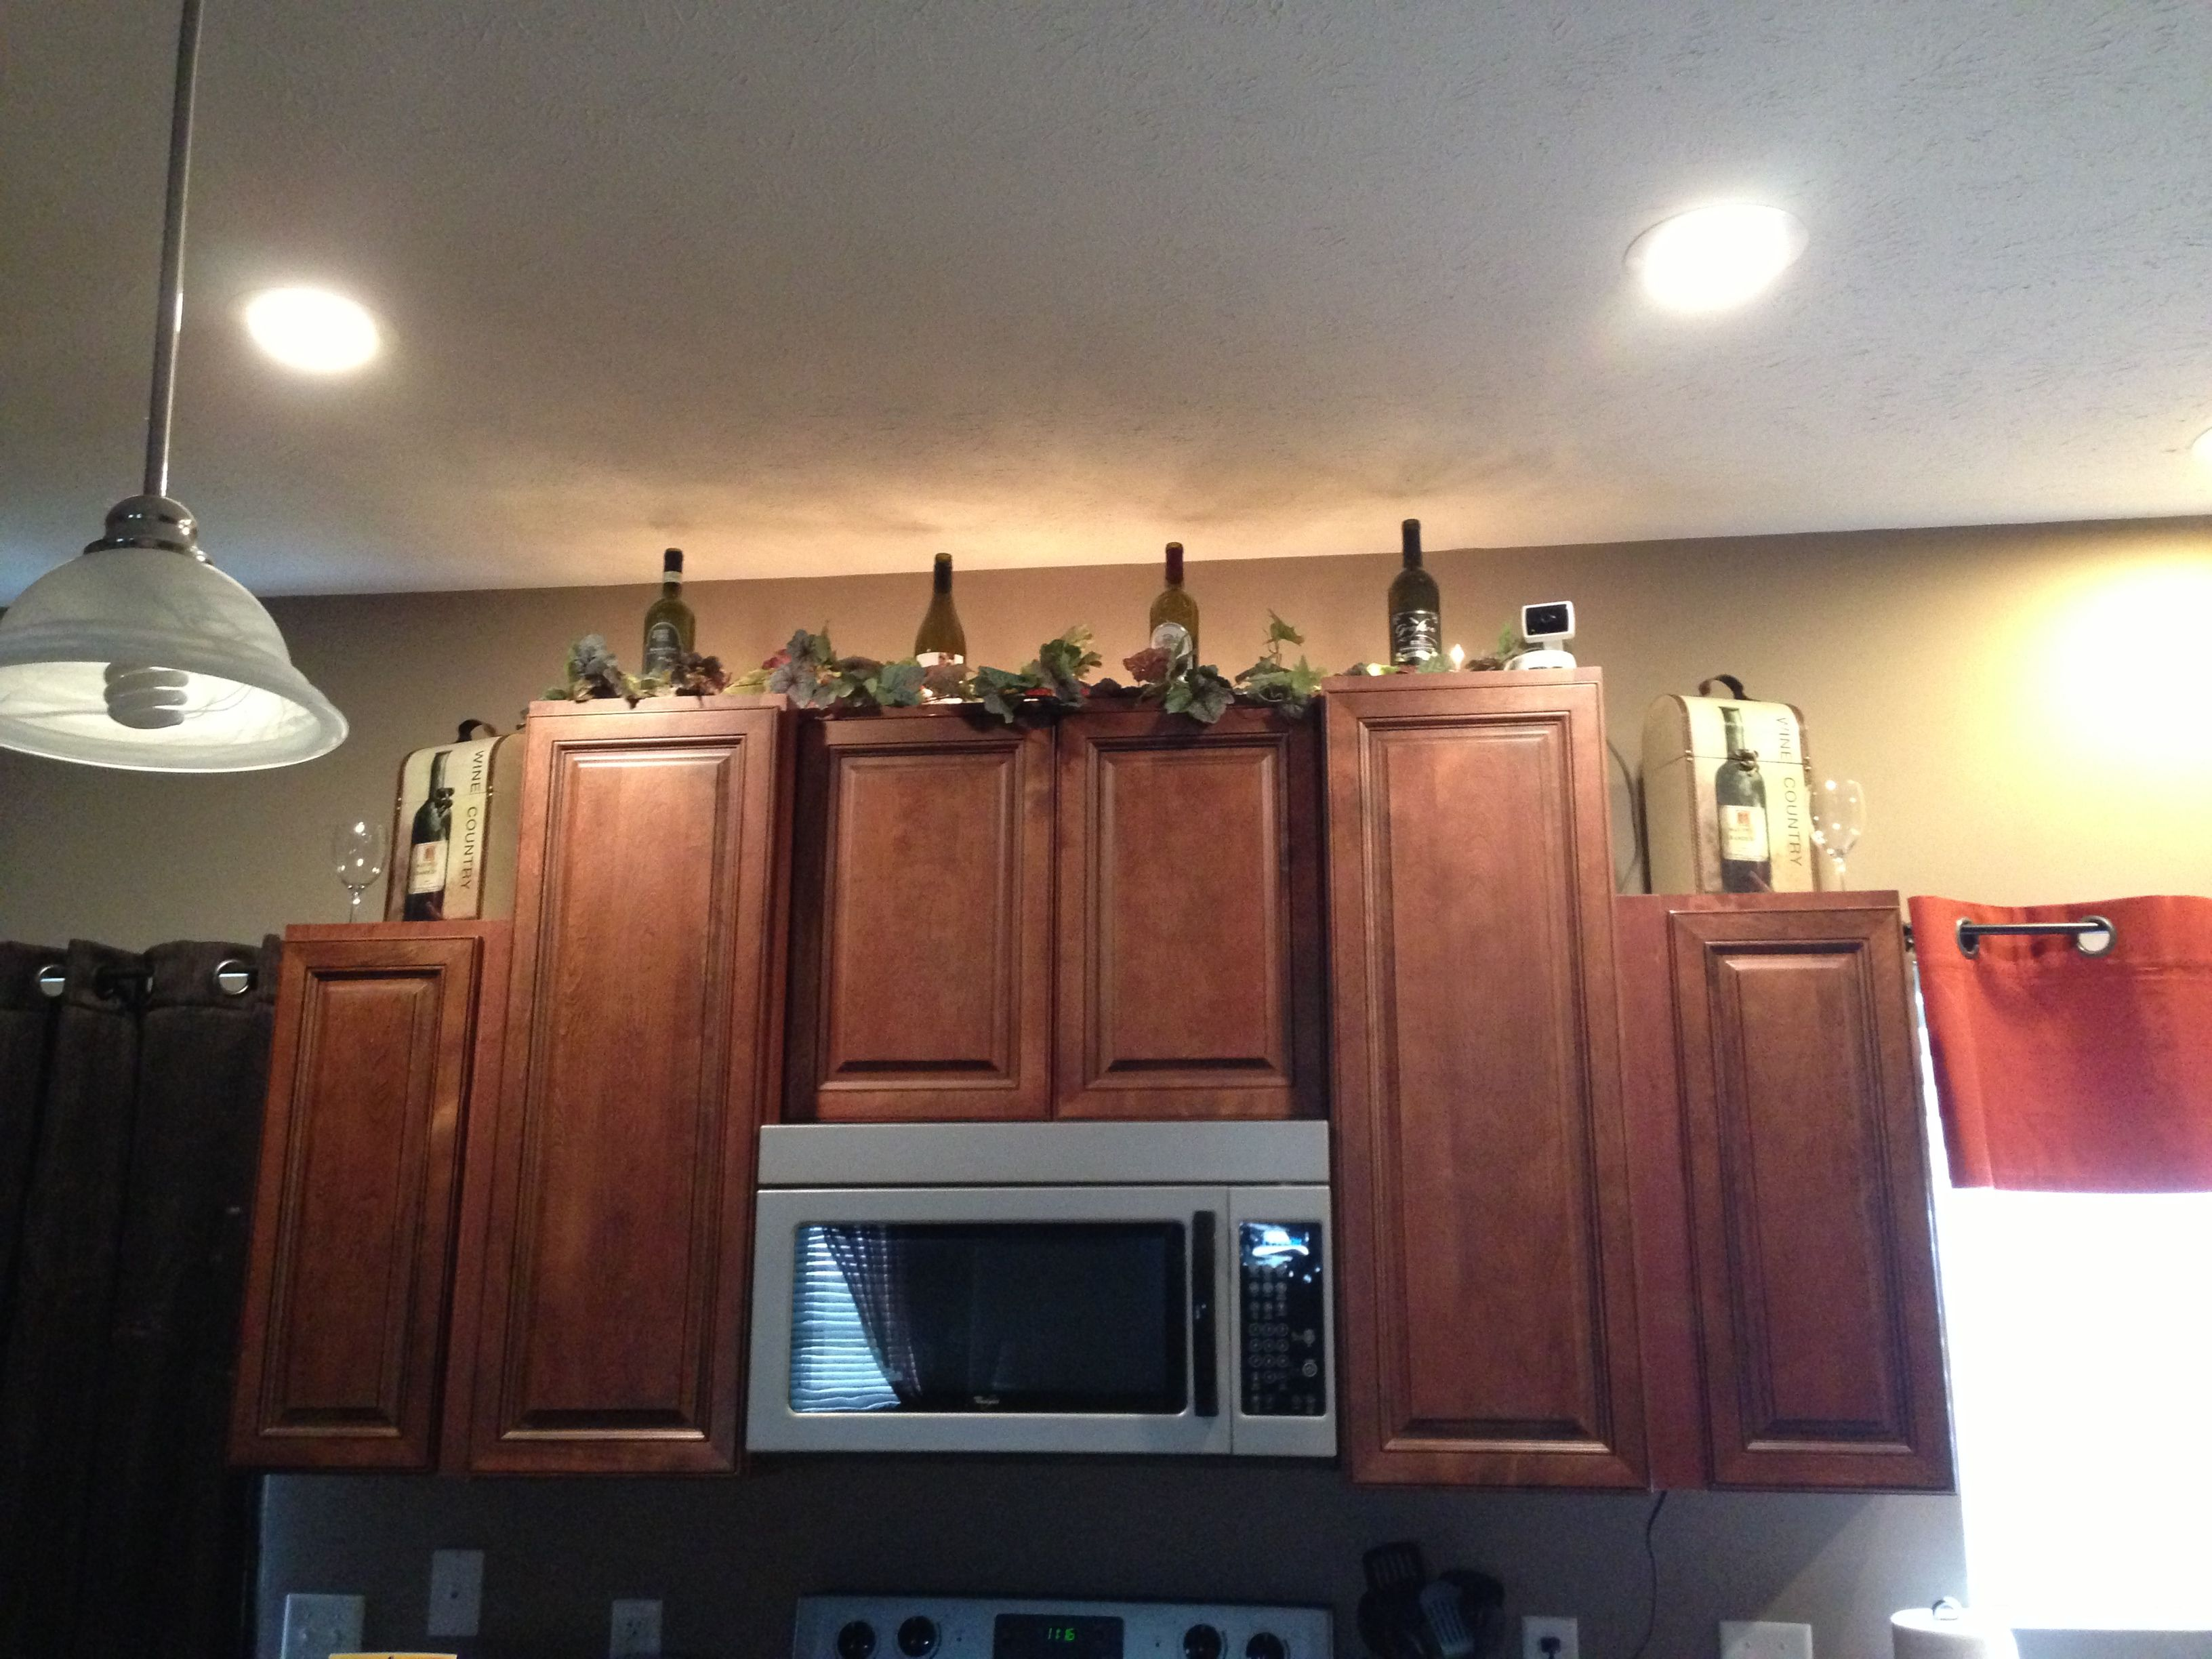 Wine bottle kitchen cabinet decorations home decor ideas Design ideas for above kitchen cabinets